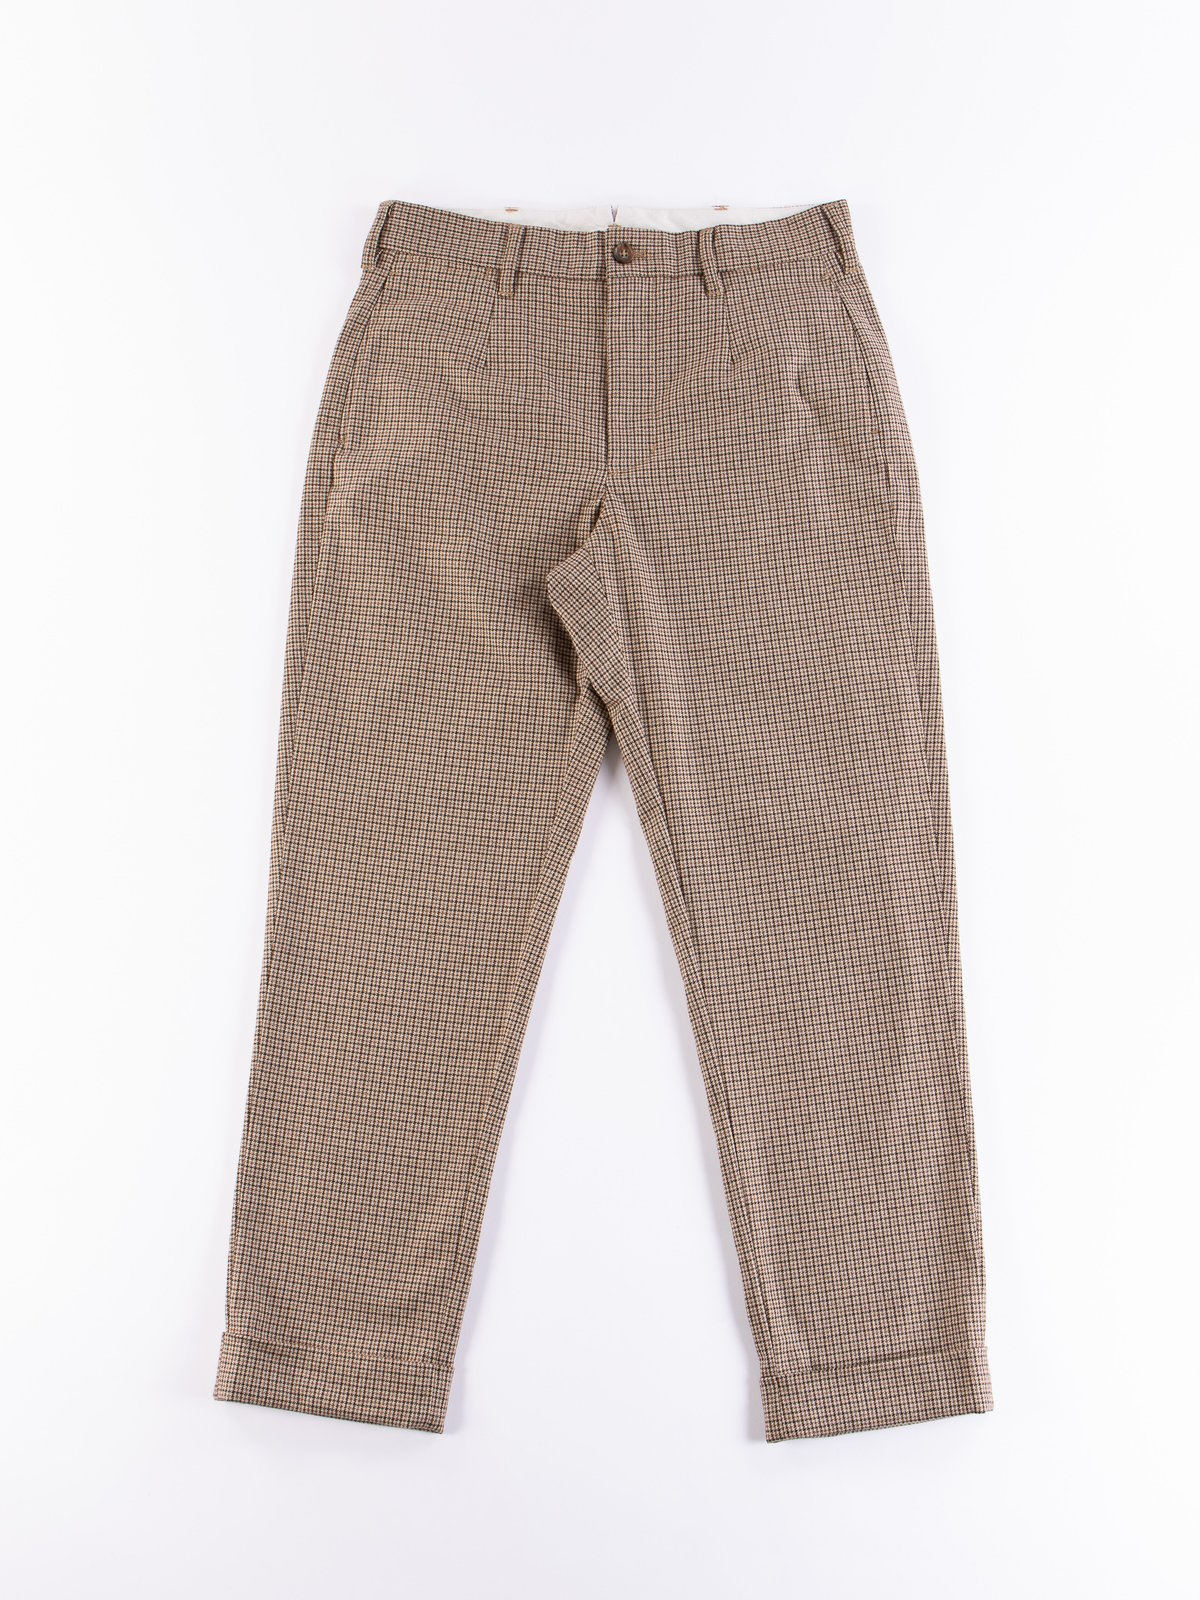 Brown Wool Poly Gunclub Check Andover Pant - Image 1